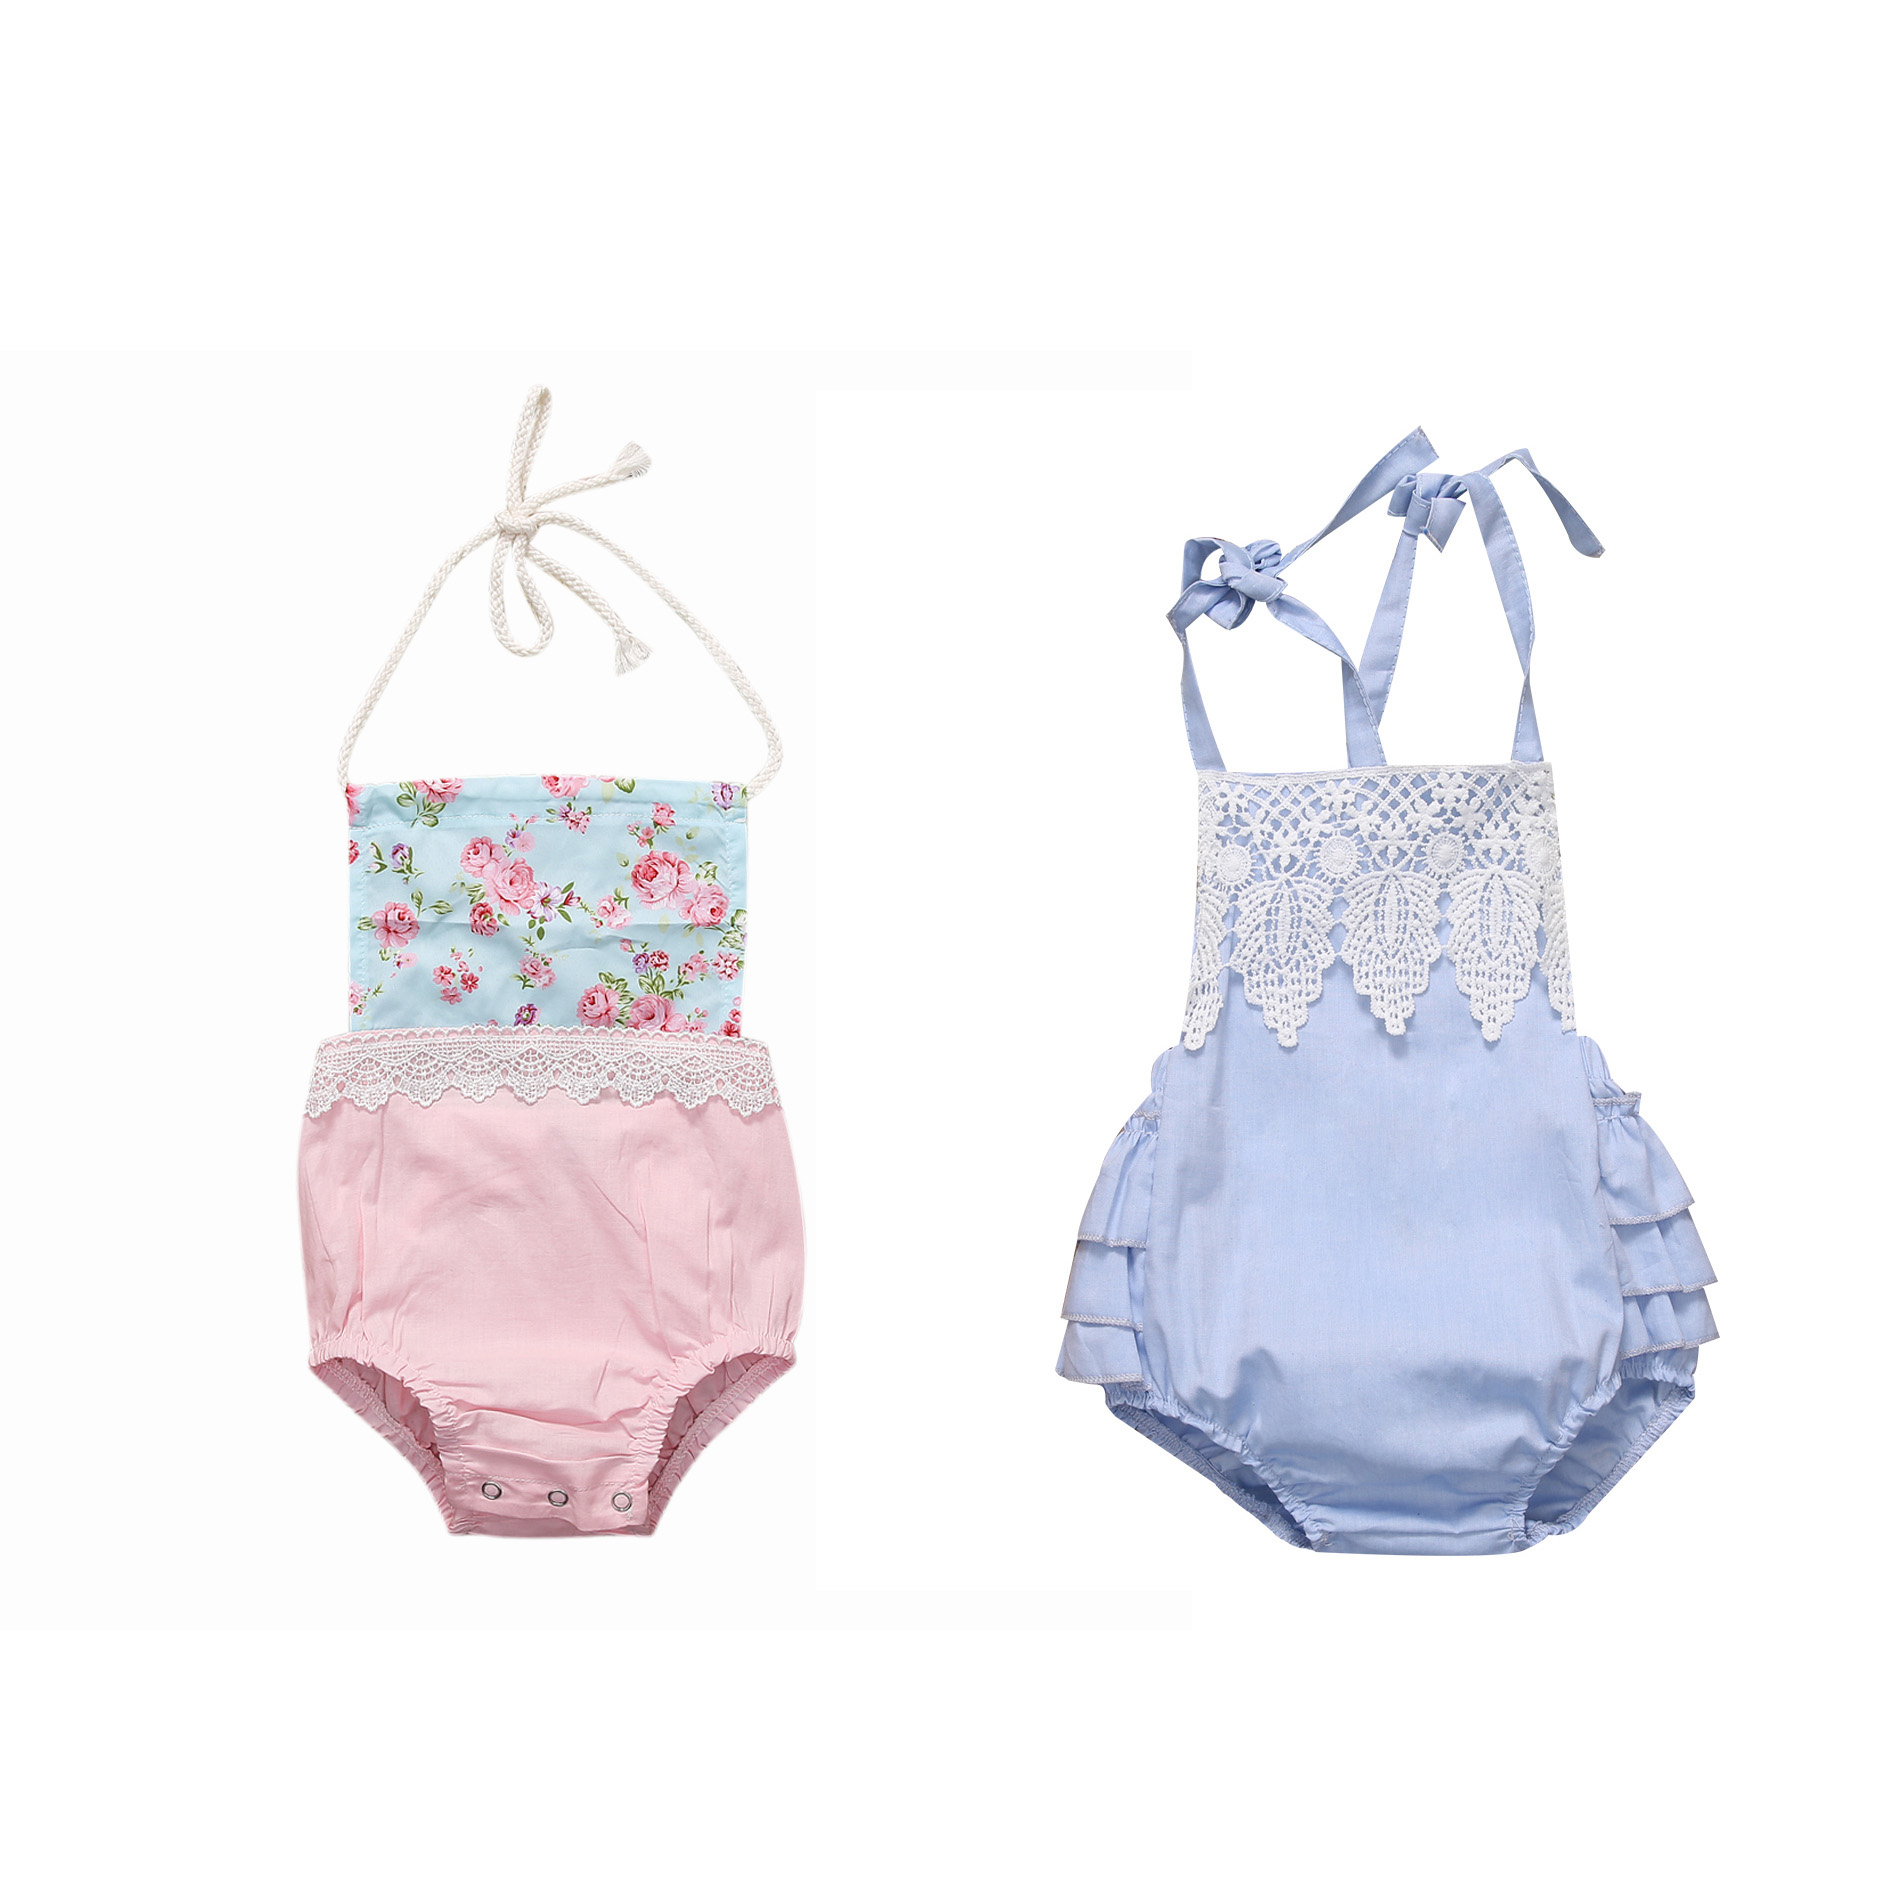 Newborn Infant Baby Girl Clothes Strap Lace Floral Romper Jumpsuit Outfit Summer Cotton Backless One-Pieces Outfit Baby Onesie toddler newborn infant baby girl floral romper jumpsuit outfits summer baby girl clothes sunsuit cotton baby onesie outfit